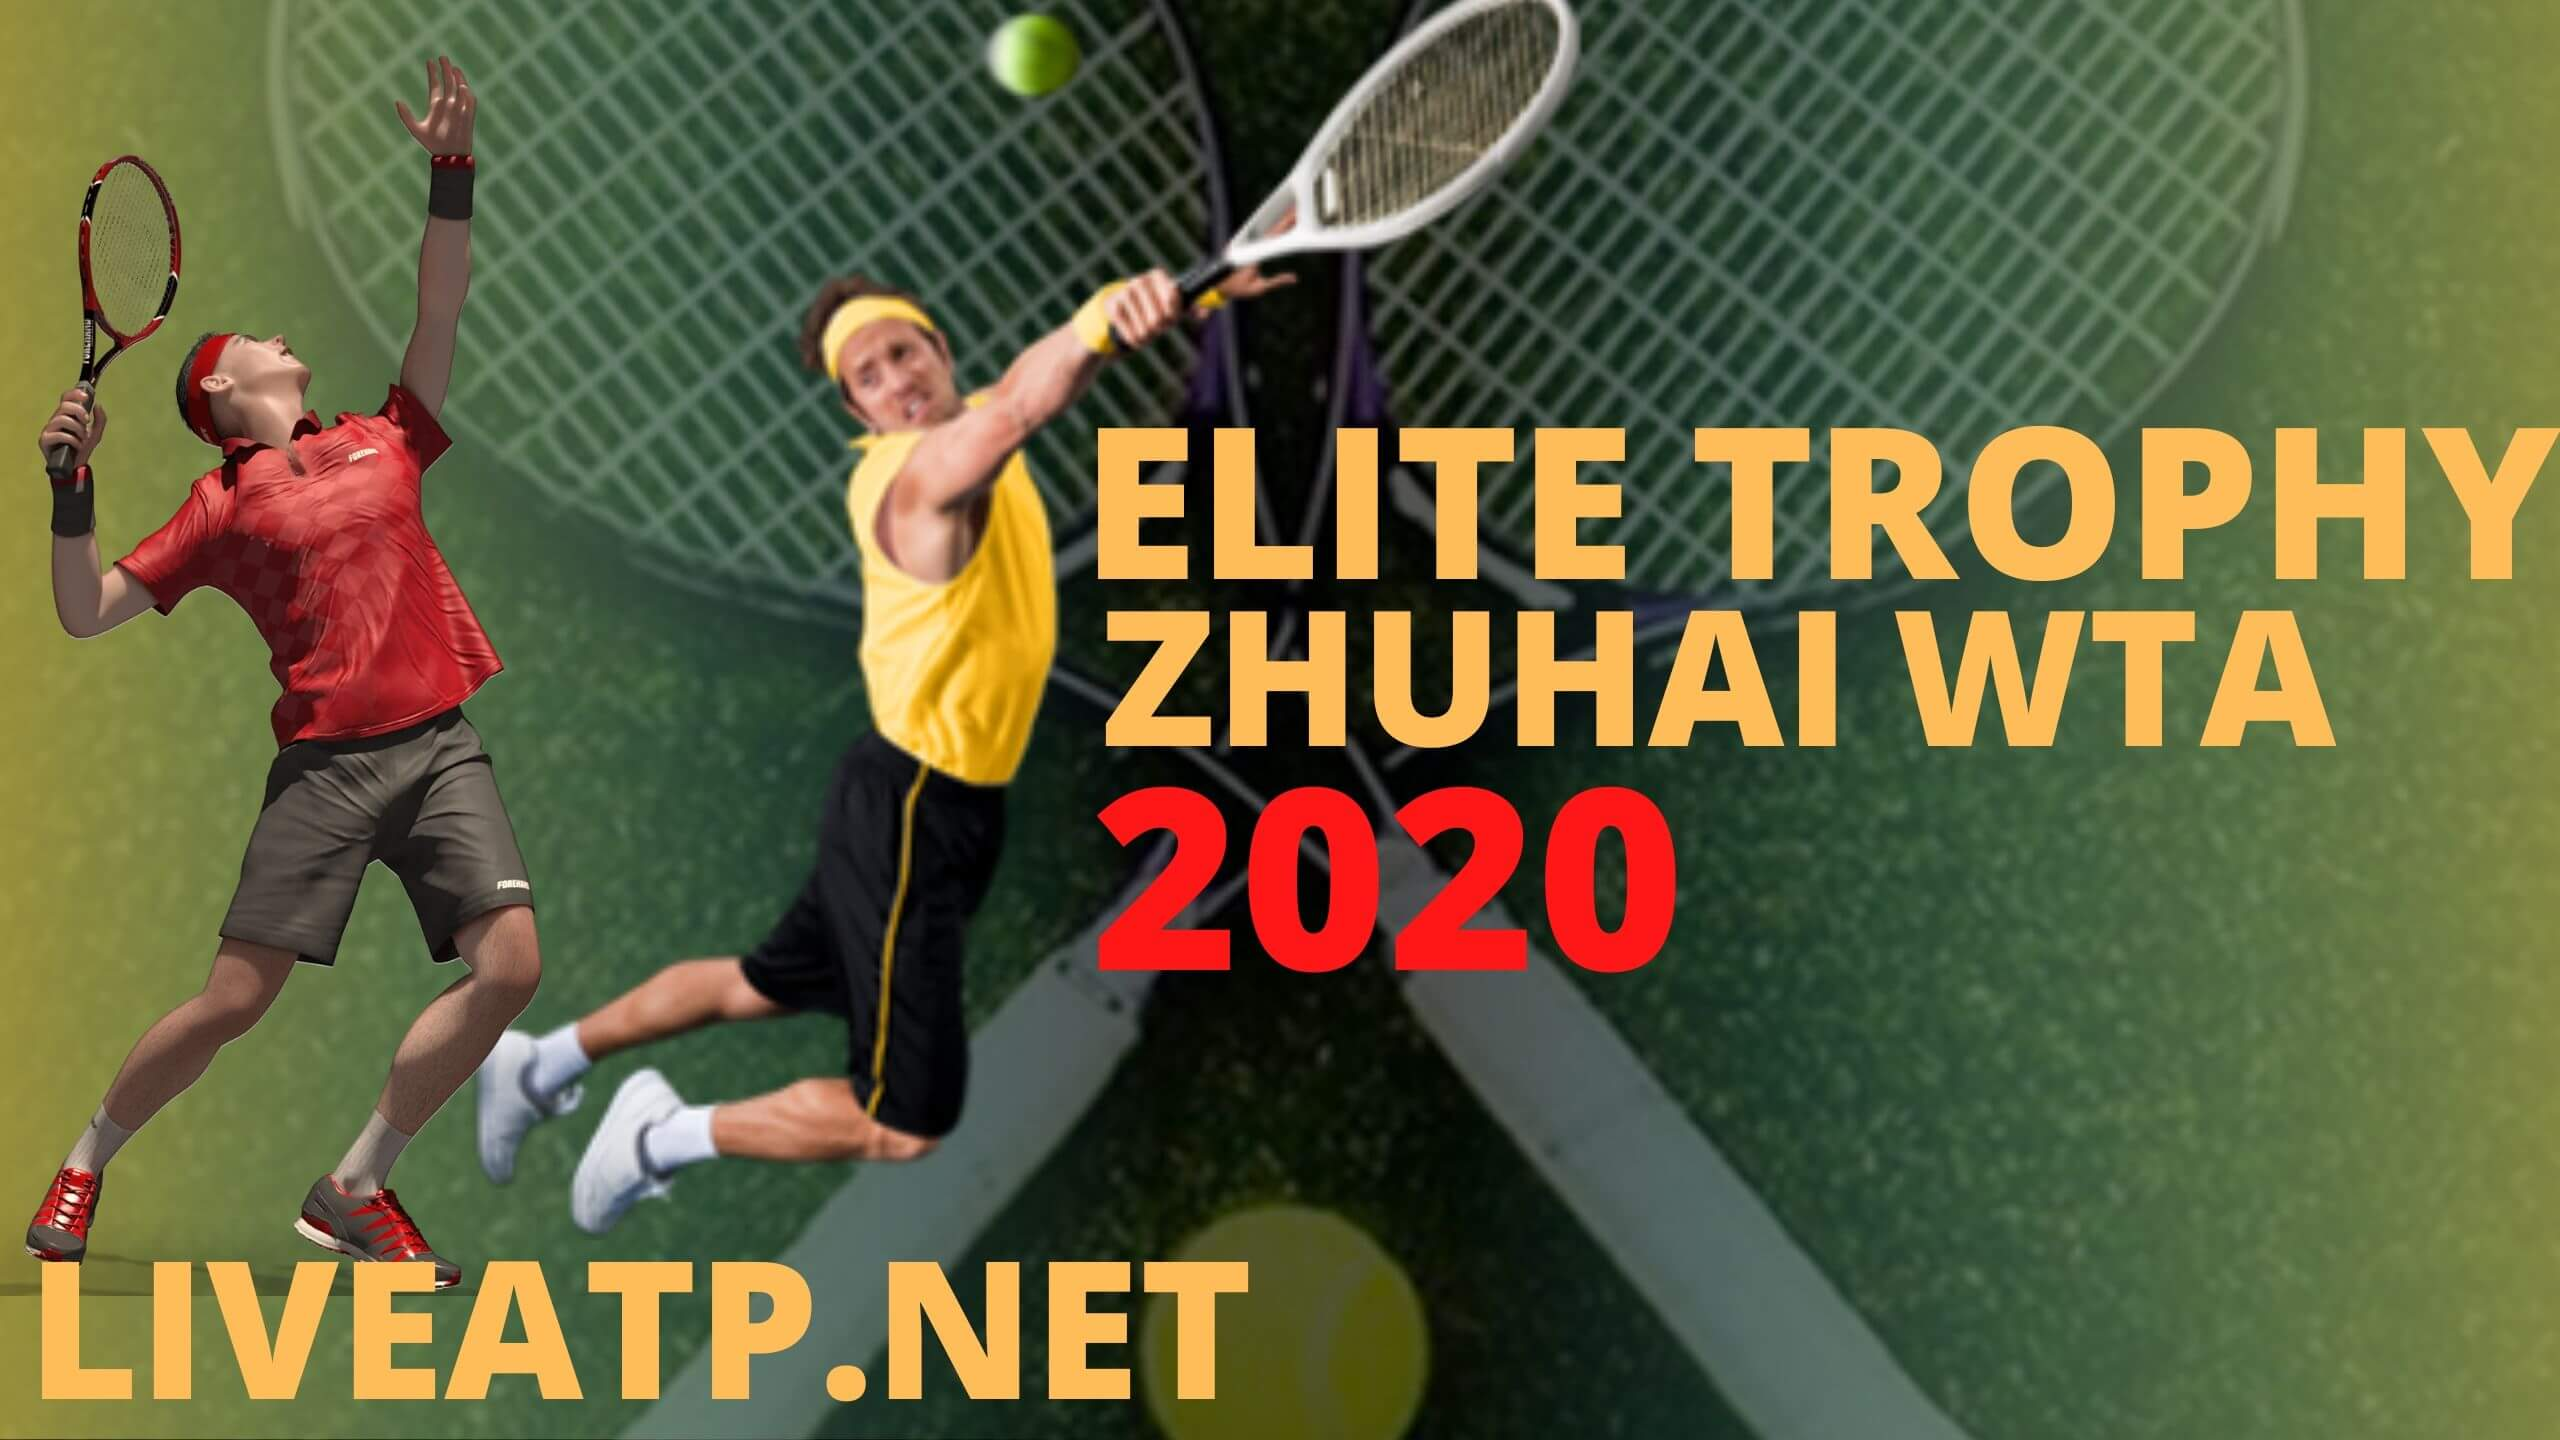 WTA Elite Trophy Zhuhai Live Stream 2020 | Day 1